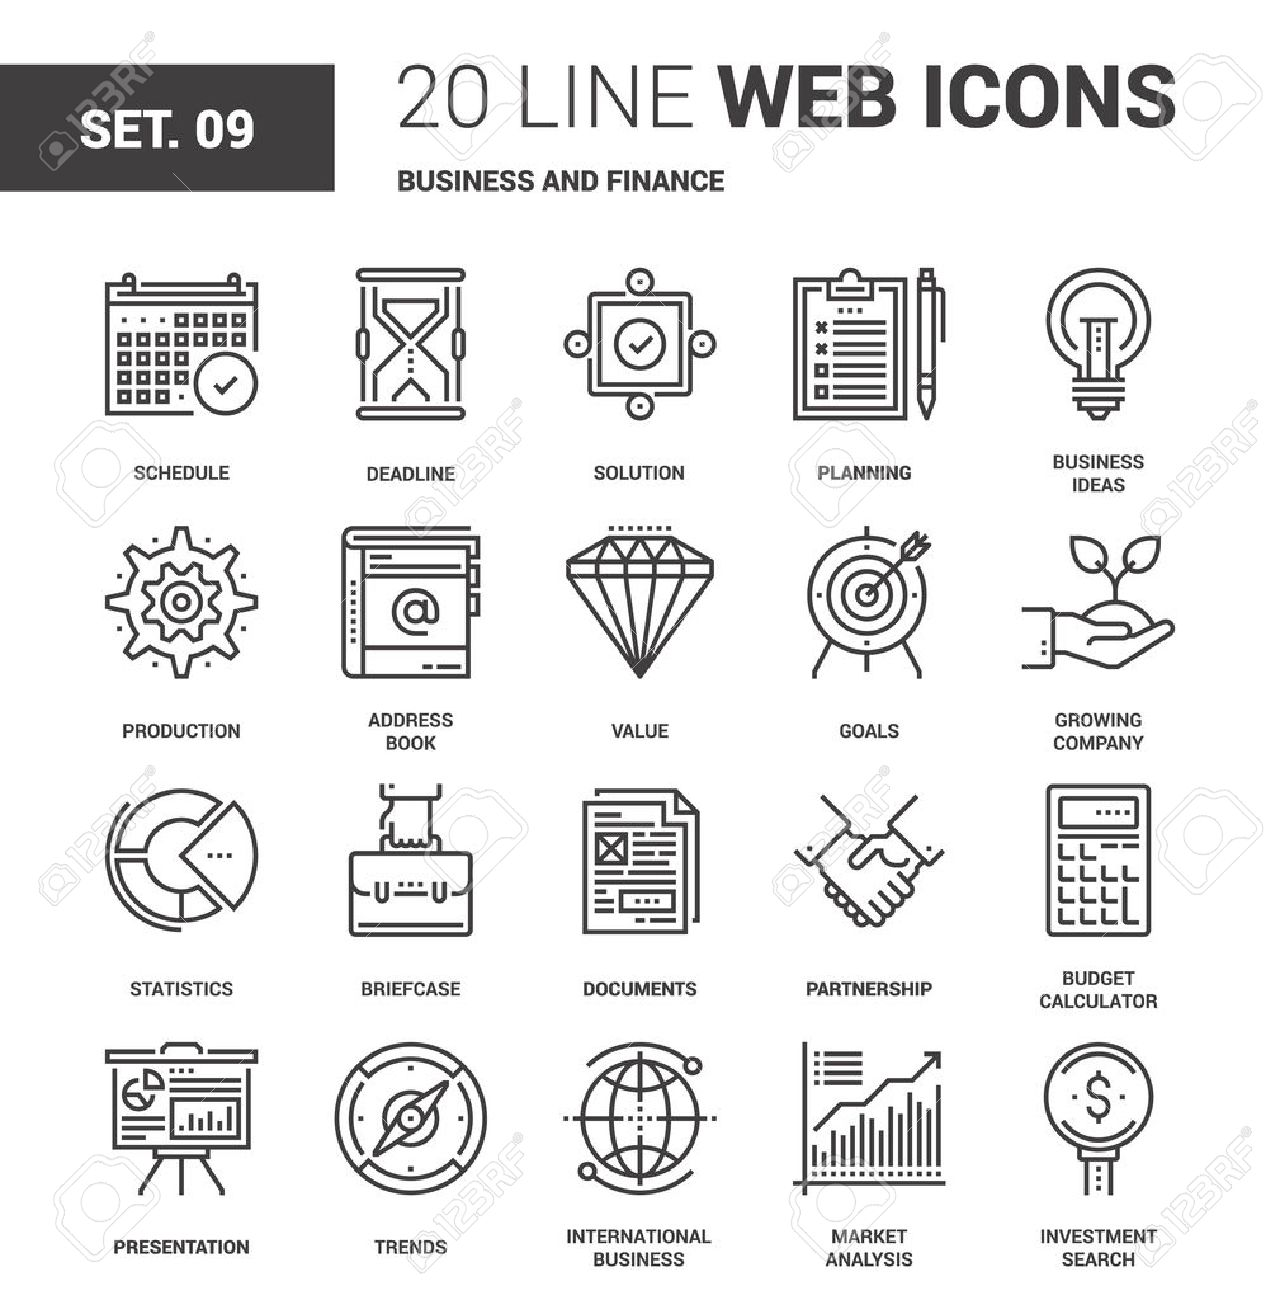 Vector set of business and finance line web icons. Each icon with adjustable strokes neatly designed on pixel perfect 64X64 size grid. Fully editable and easy to use. - 60910269